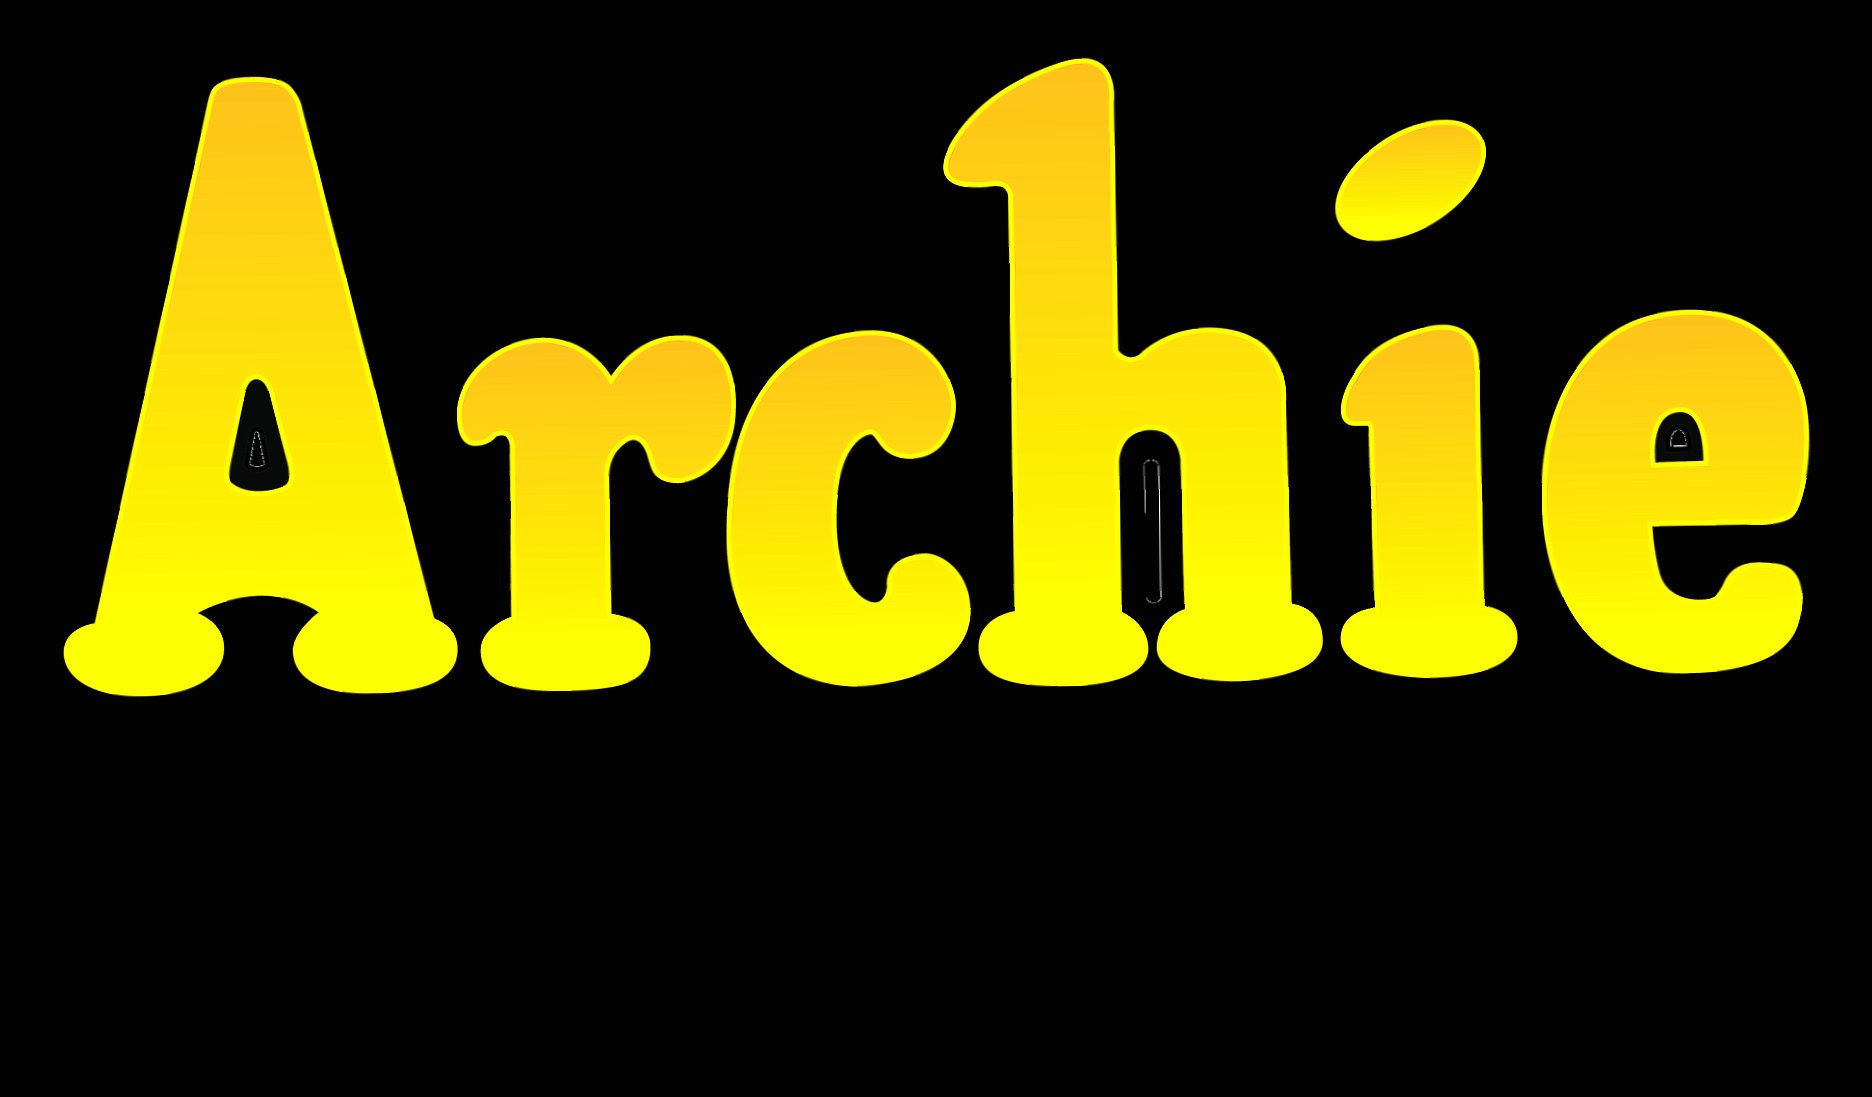 Archie wallpapers HD quality